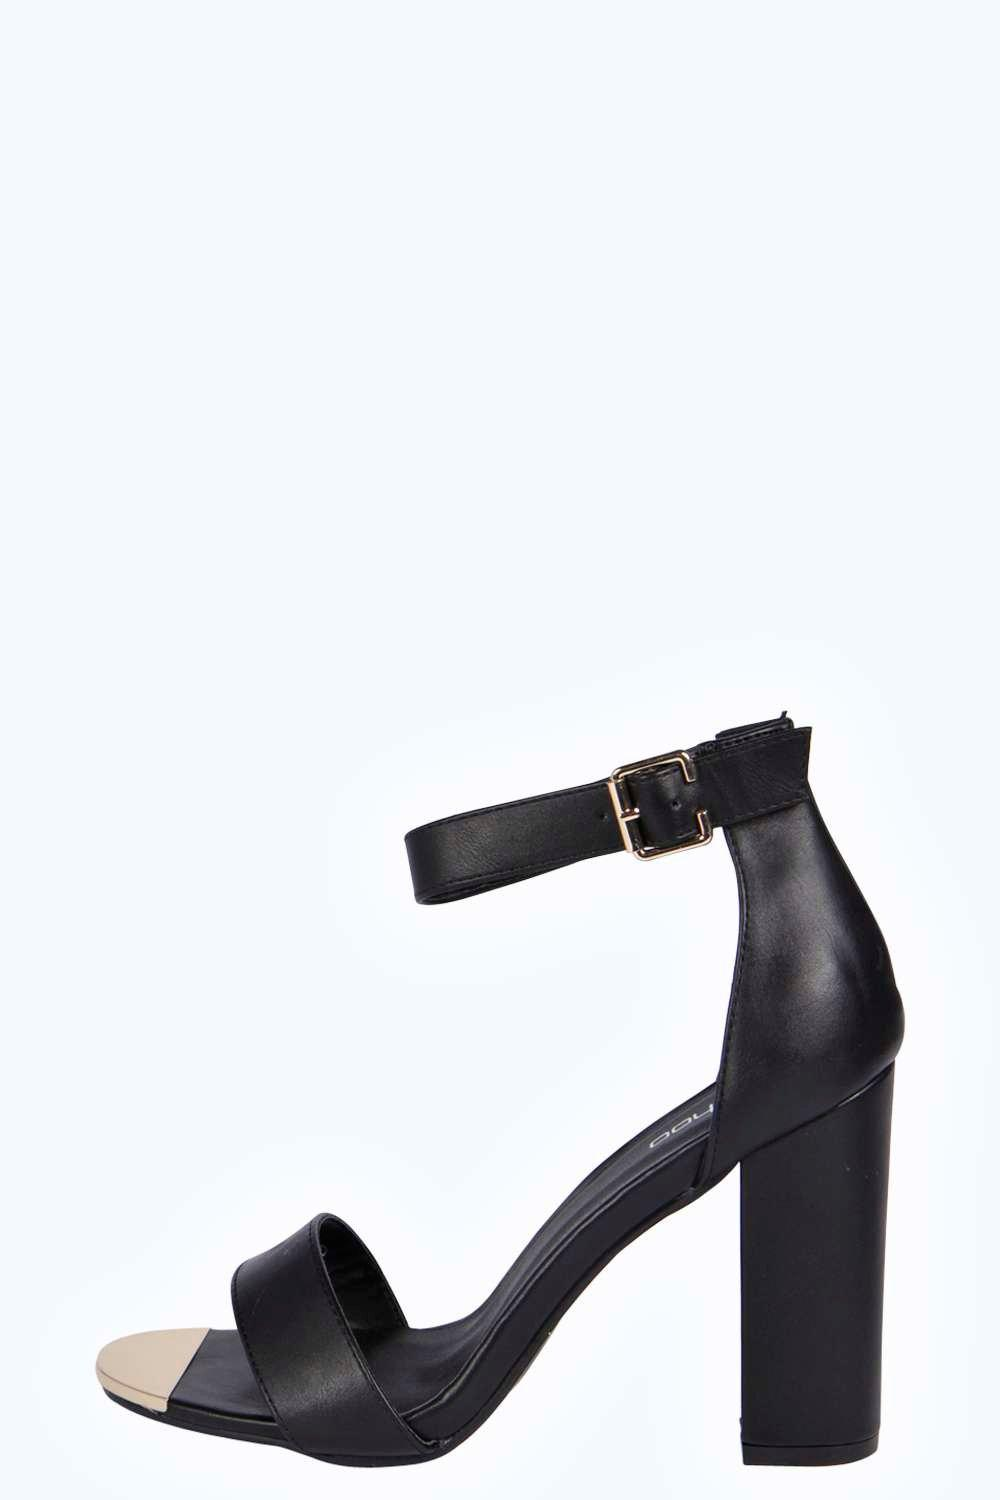 Rosa Metallic Trim Block Heels at boohoo.com